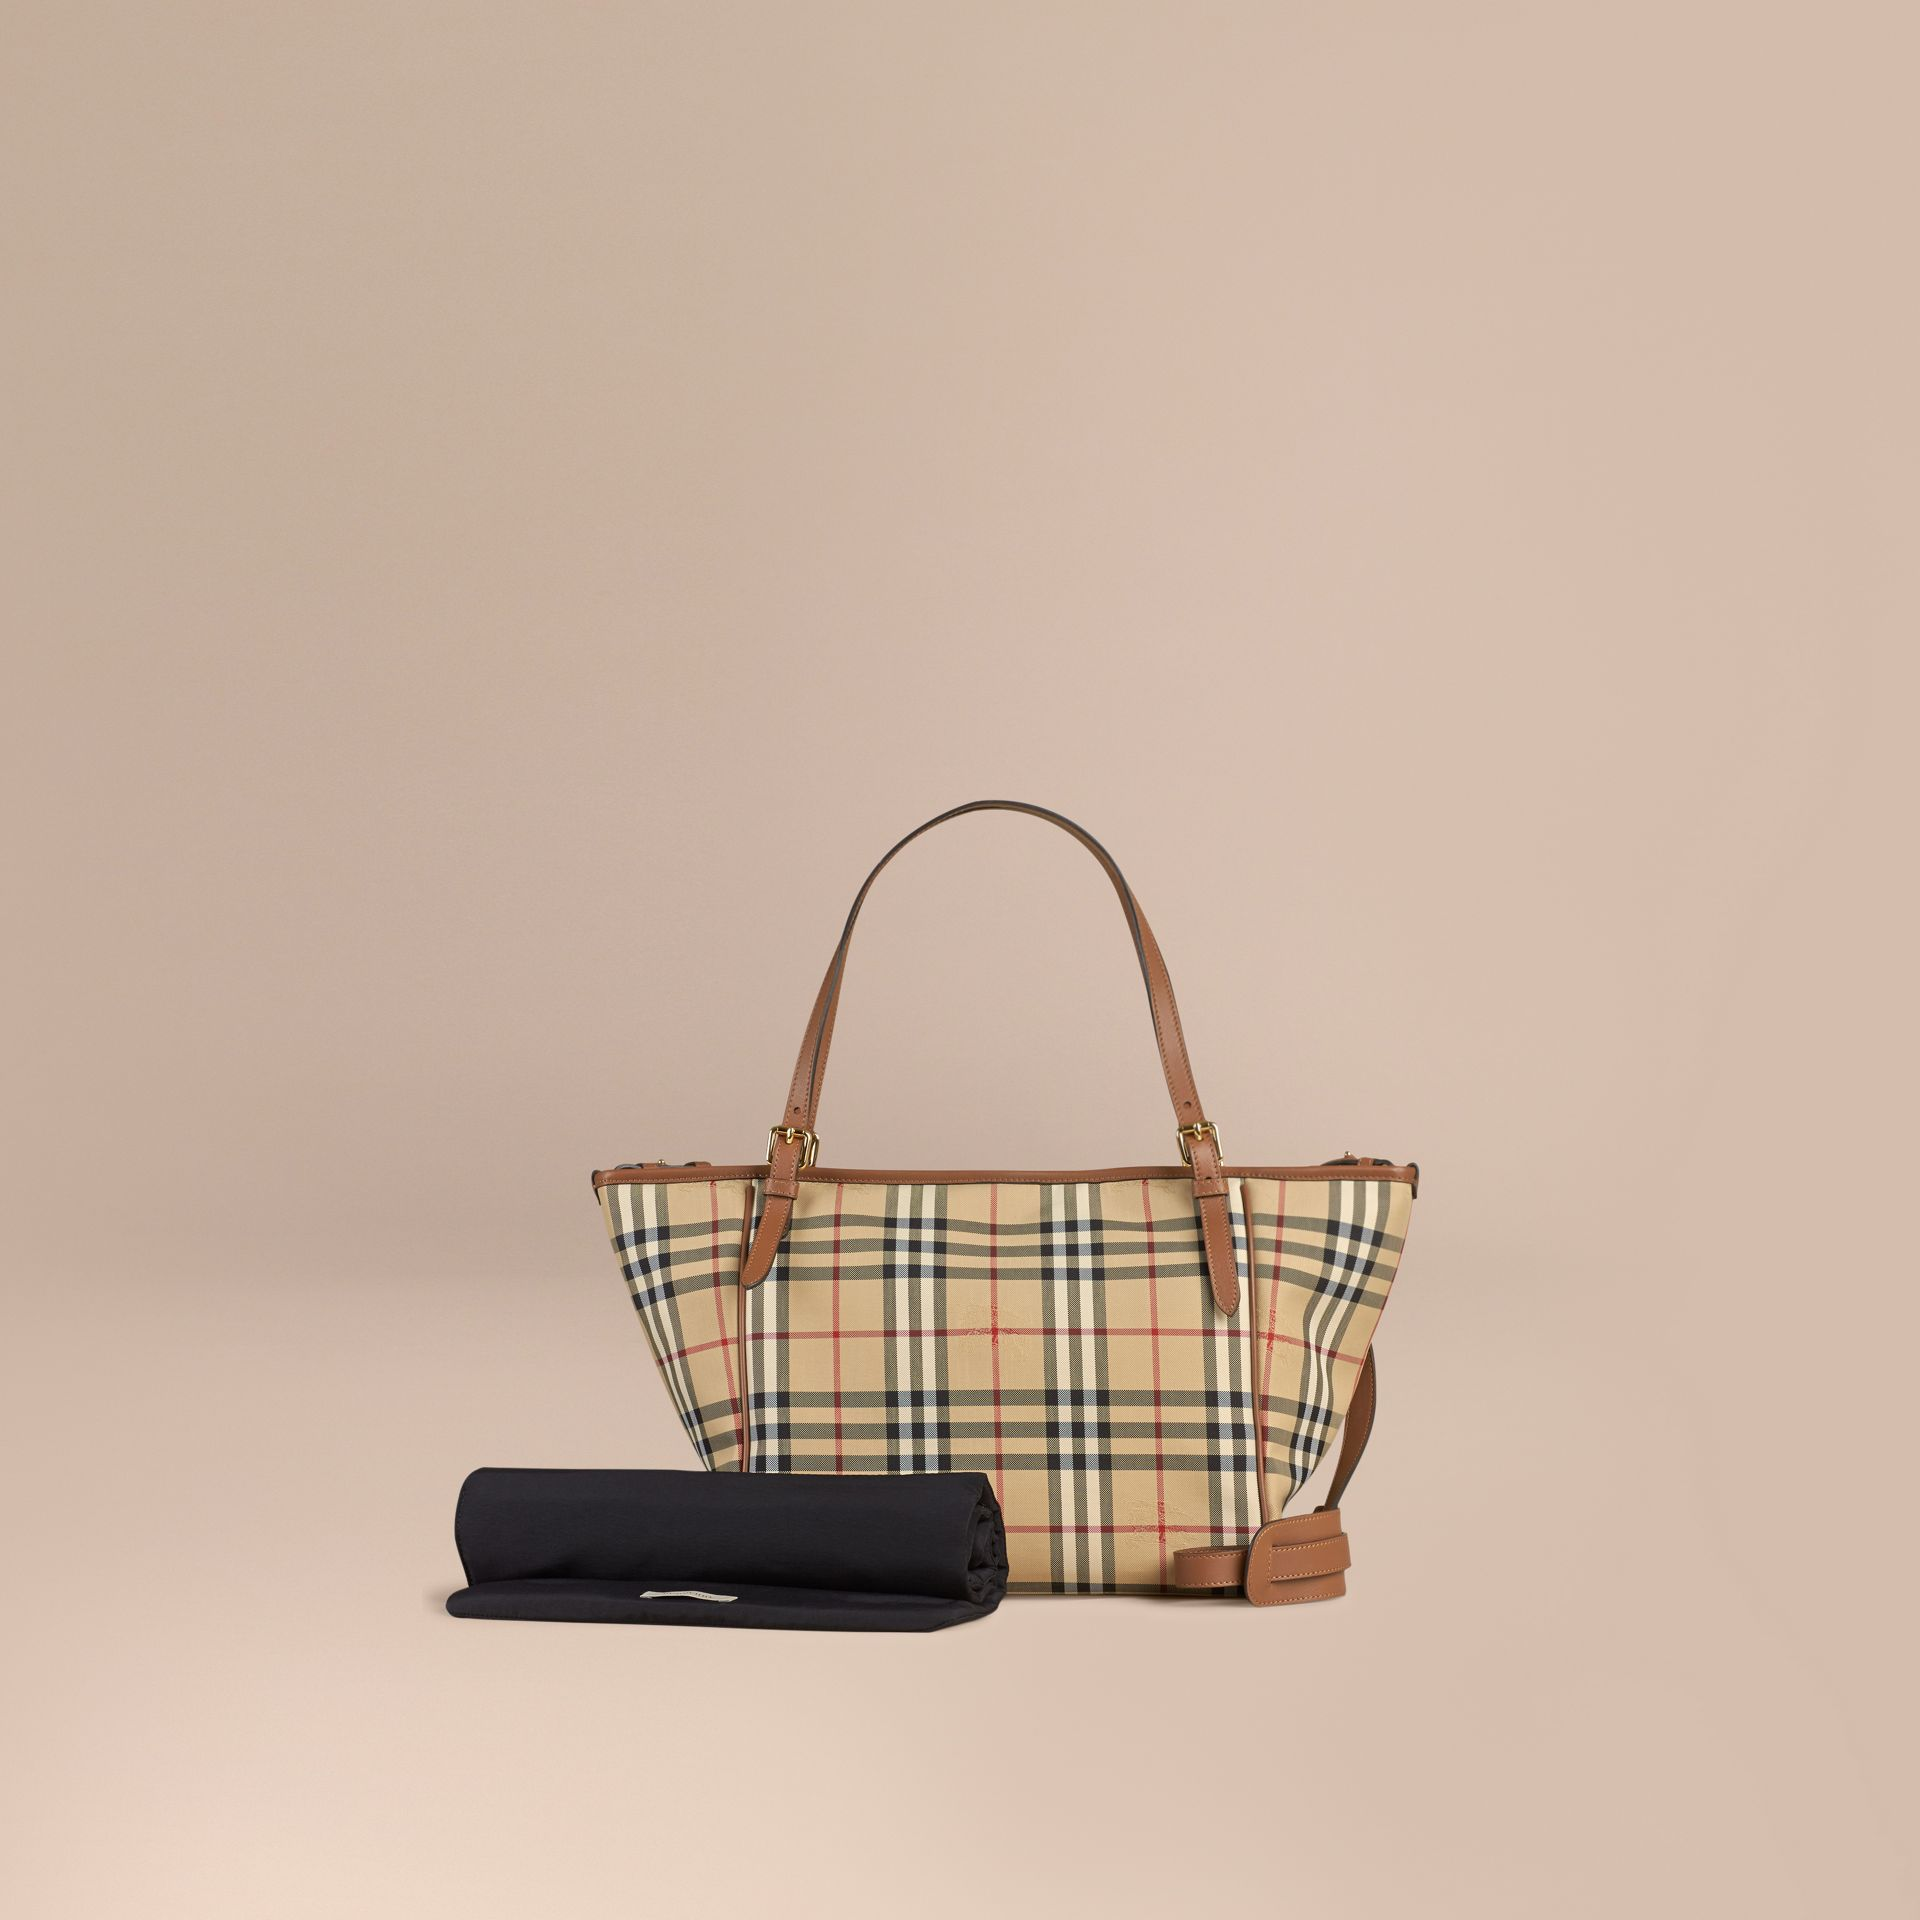 Horseferry Check Baby Changing Tote Bag in Tan | Burberry Canada - gallery image 1